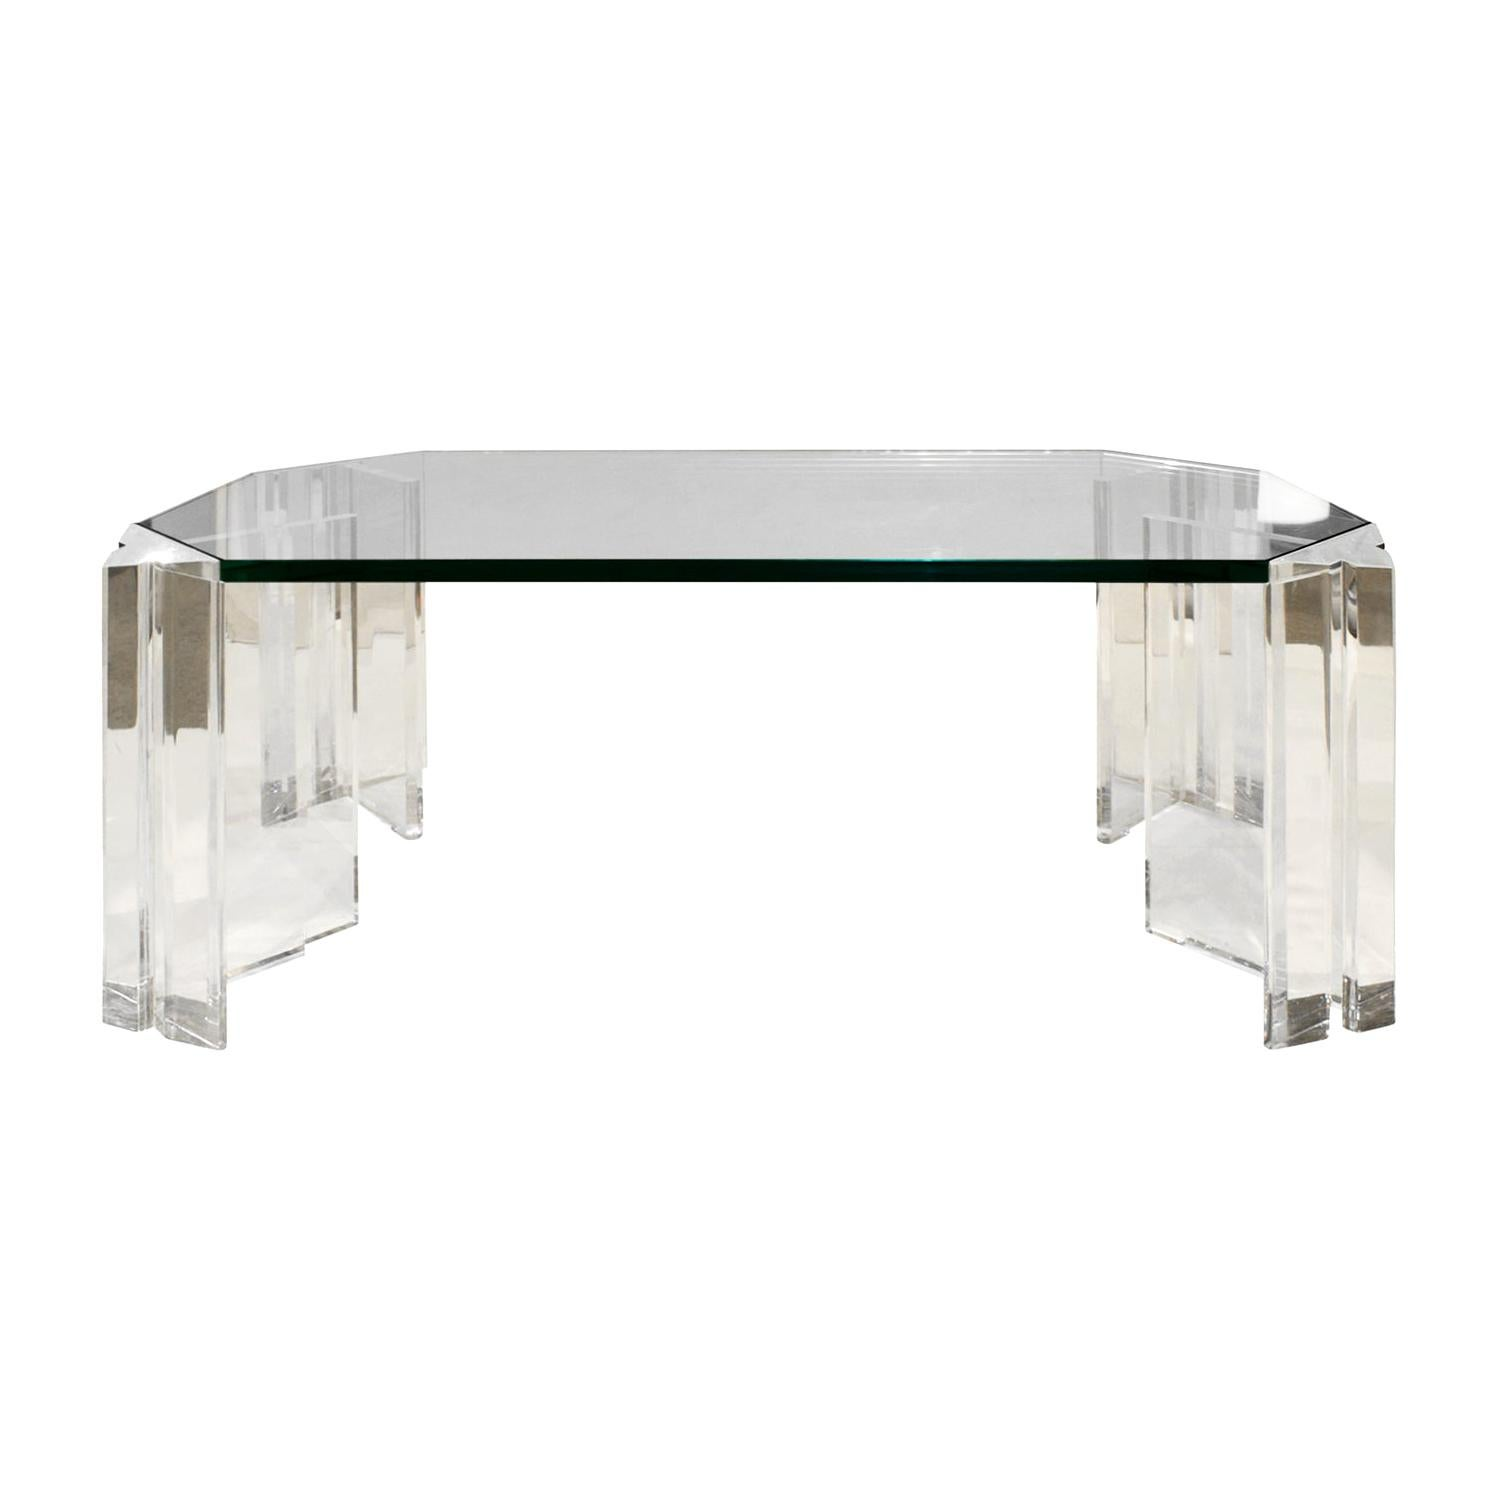 Les Prismatiques Sculptural Coffee Table in Lucite and Glass, 1970s 'Signed'